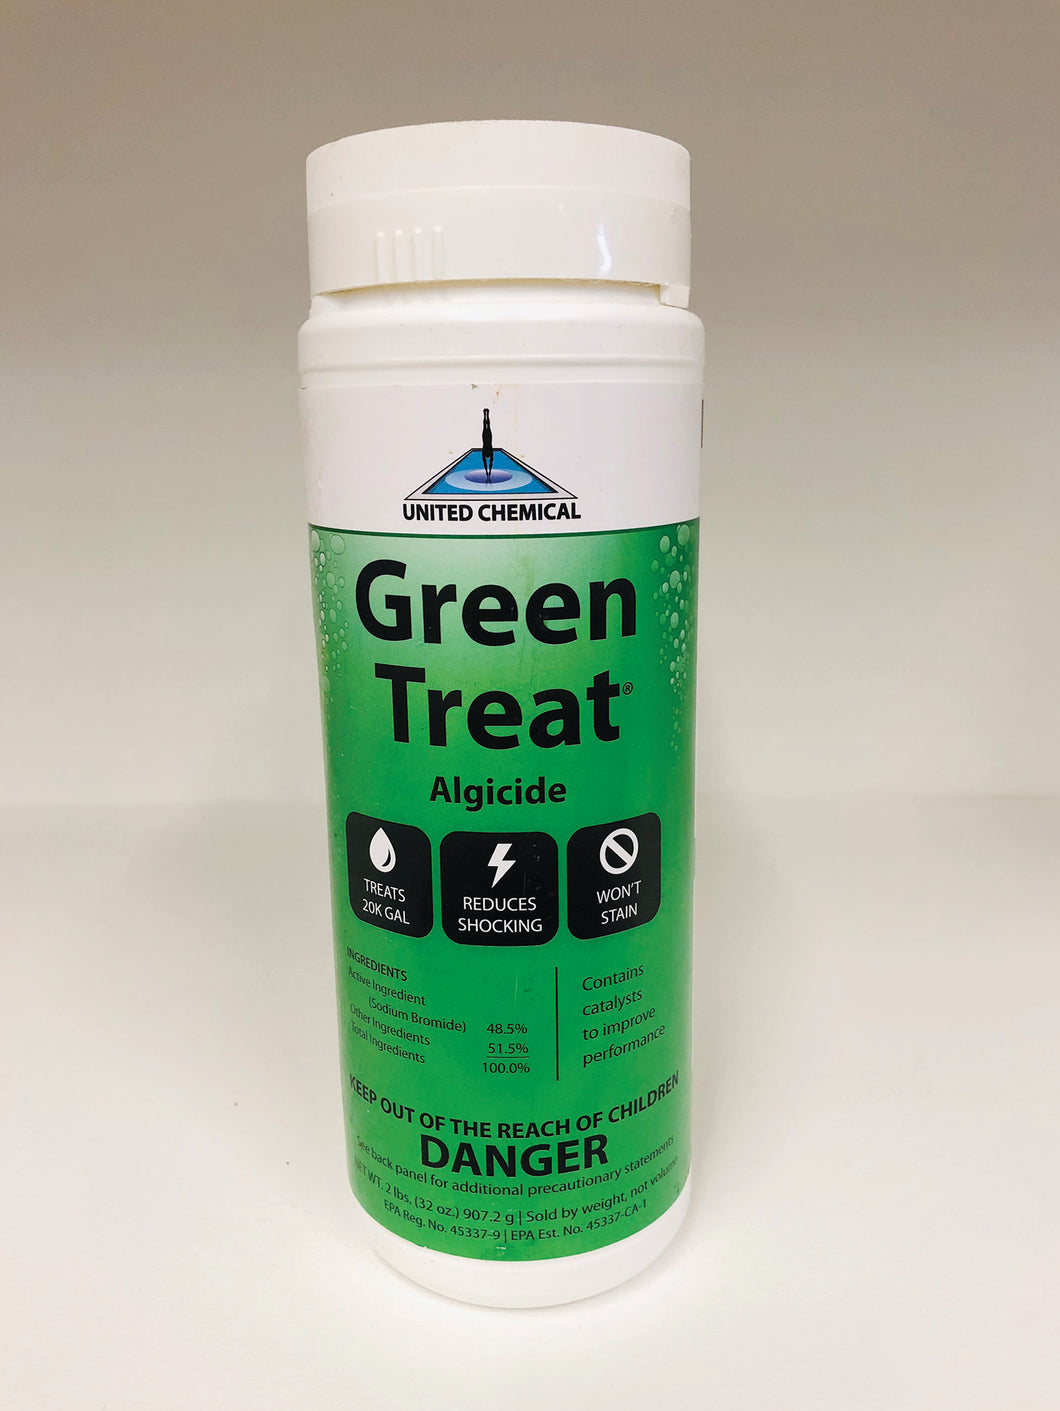 United Chemical Green Treat